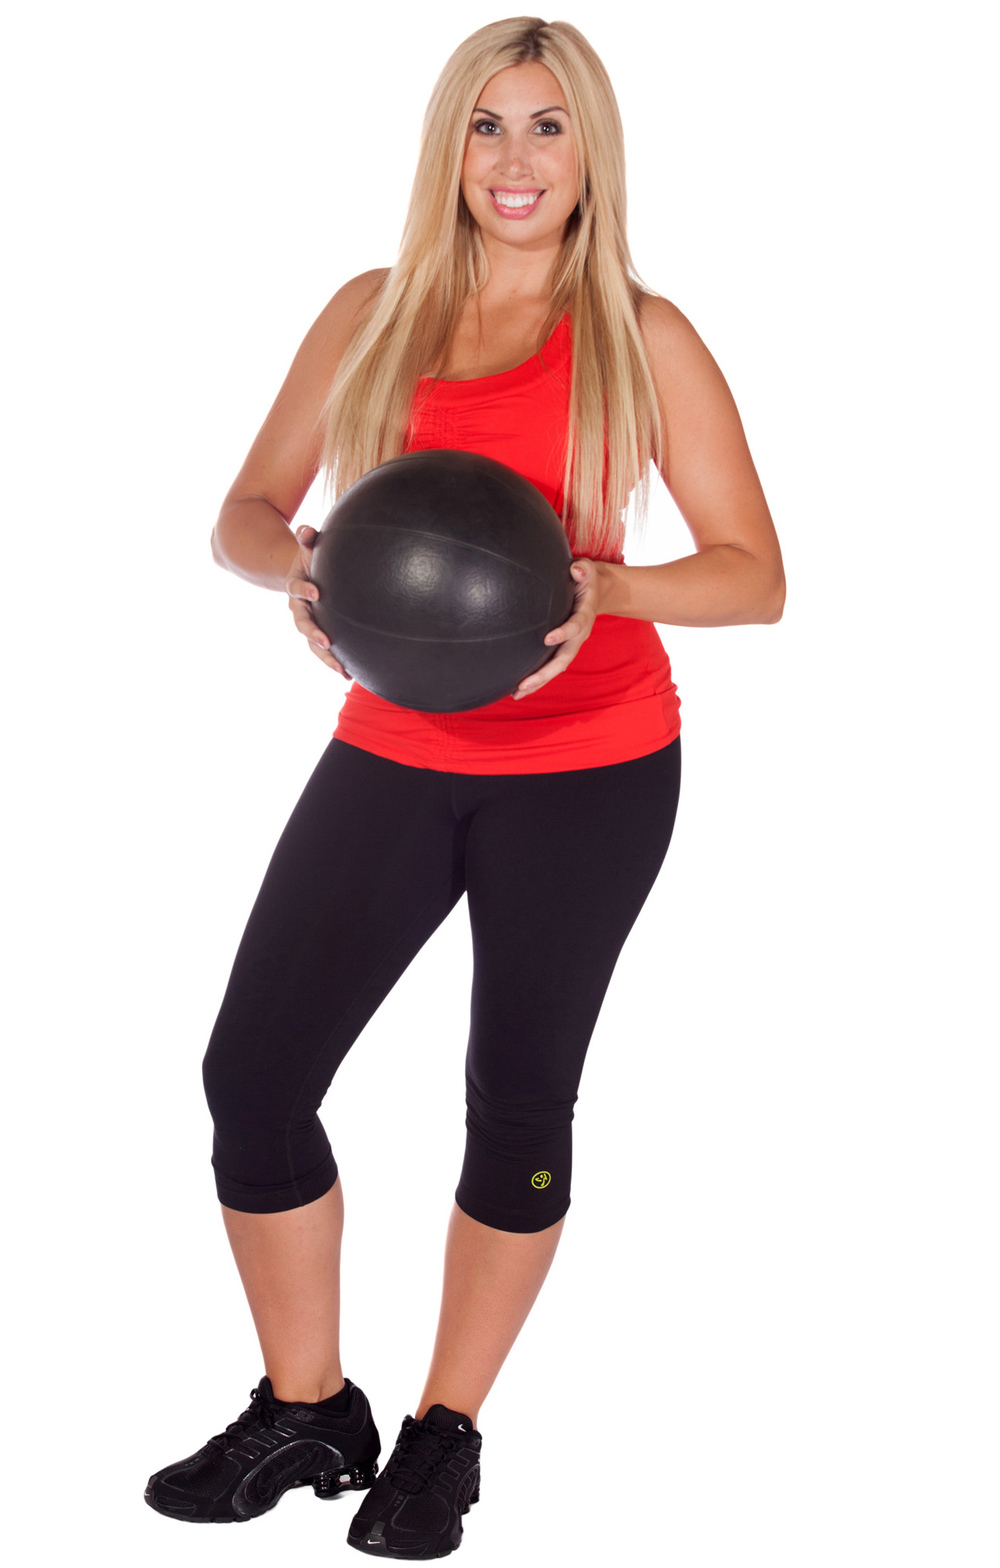 phoebe-flannagan-with-ball-40-below-fitness-center-fairbanks-ak-151-web-4.jpg